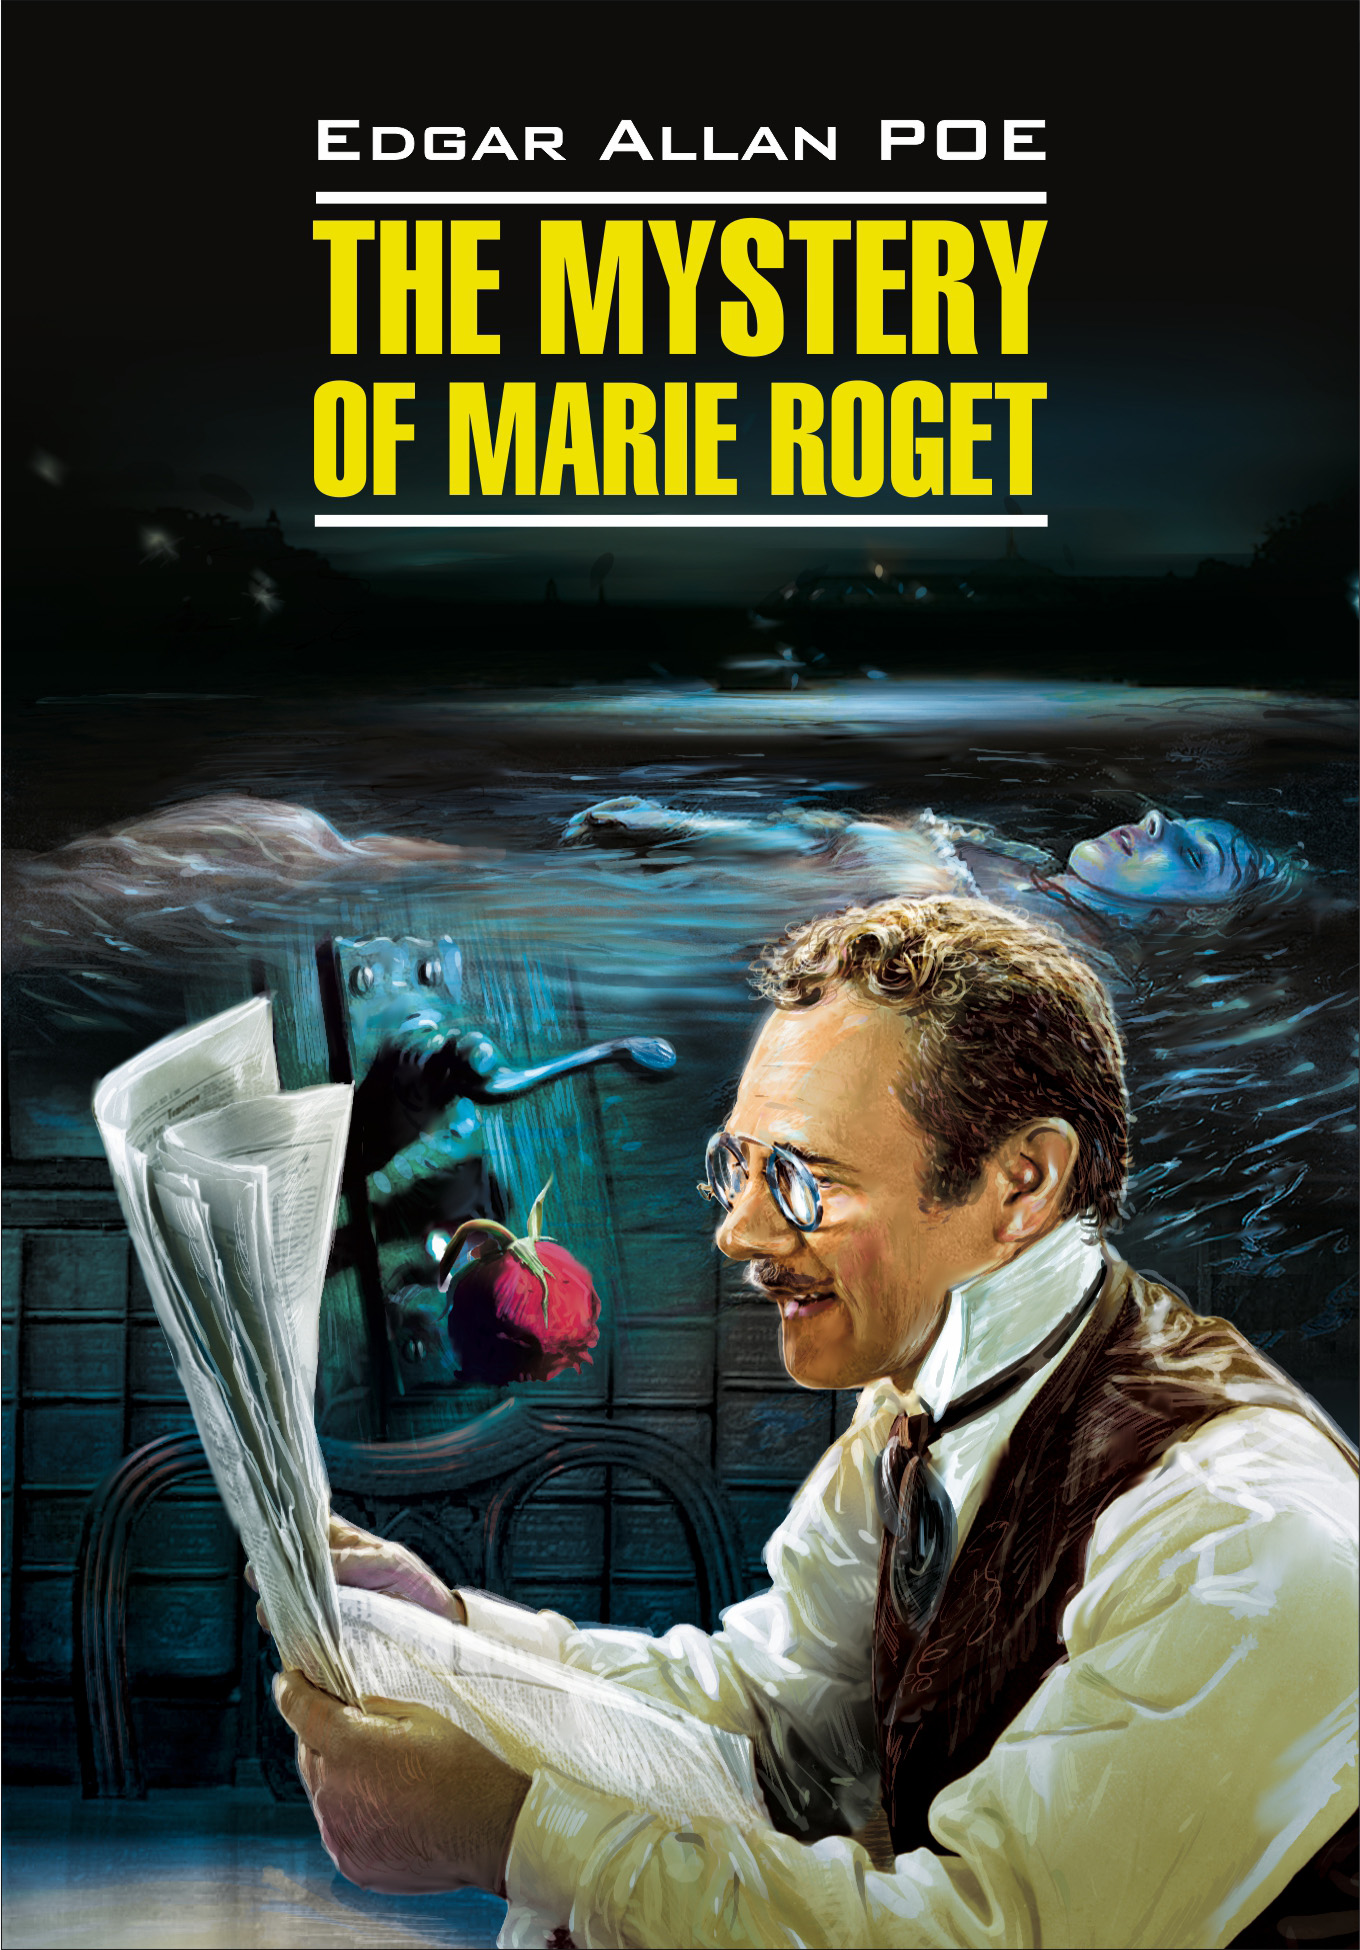 Эдгар Аллан По The Mystery of Marie Roget. Stories / Тайна Мари Роже. Рассказы. Книга для чтения на английском языке poe e a the mystery of marie roget